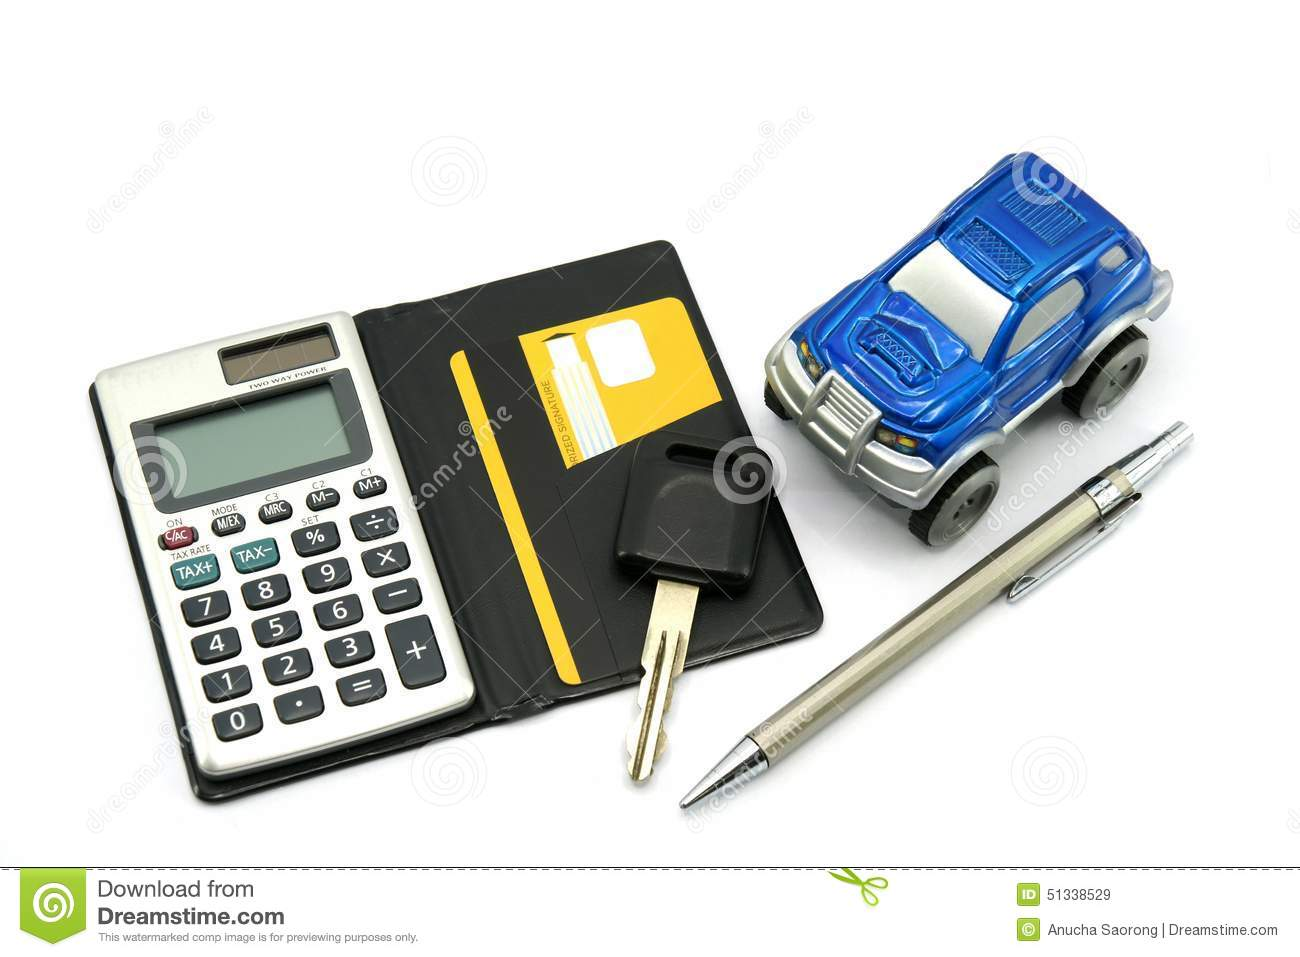 Buy Sell Rent A Car Stock Image Image Of Calculation 51338529